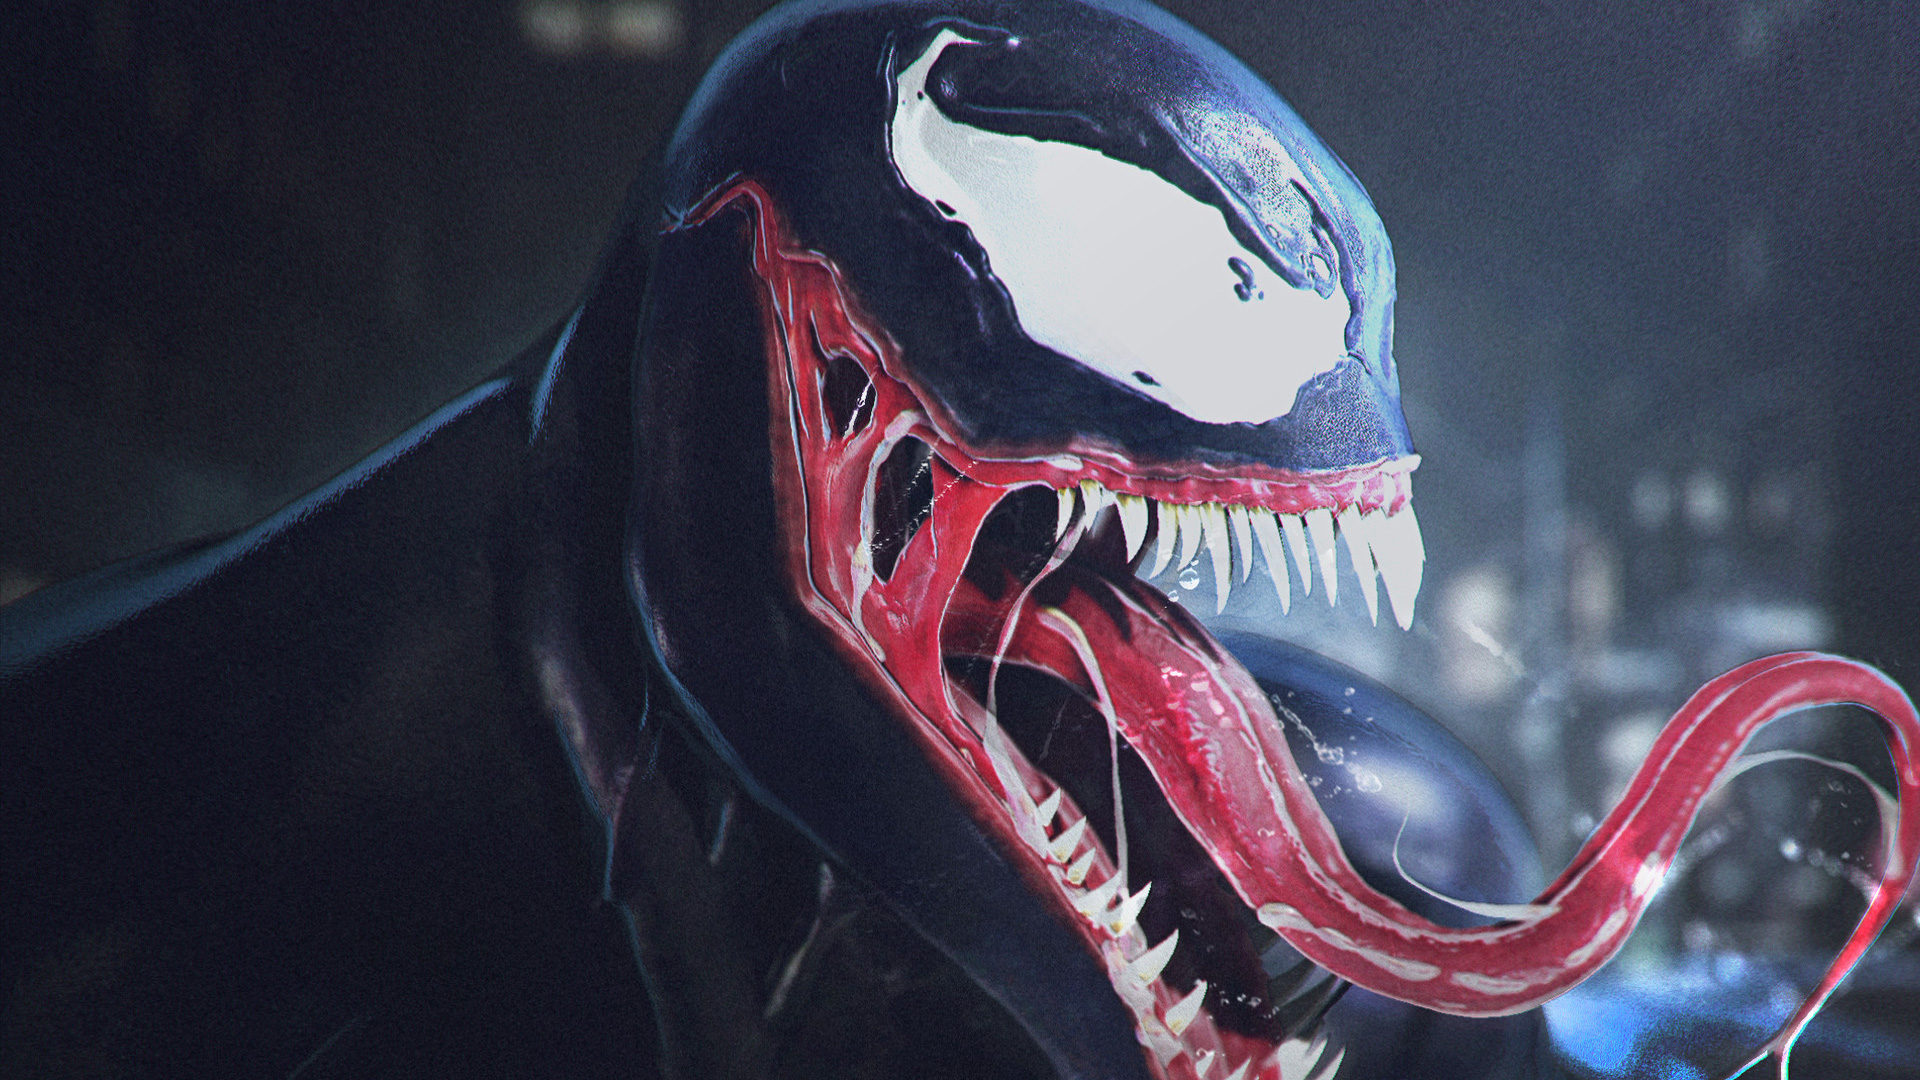 We Are Venom Art Hd Superheroes 4k Wallpapers Images Backgrounds